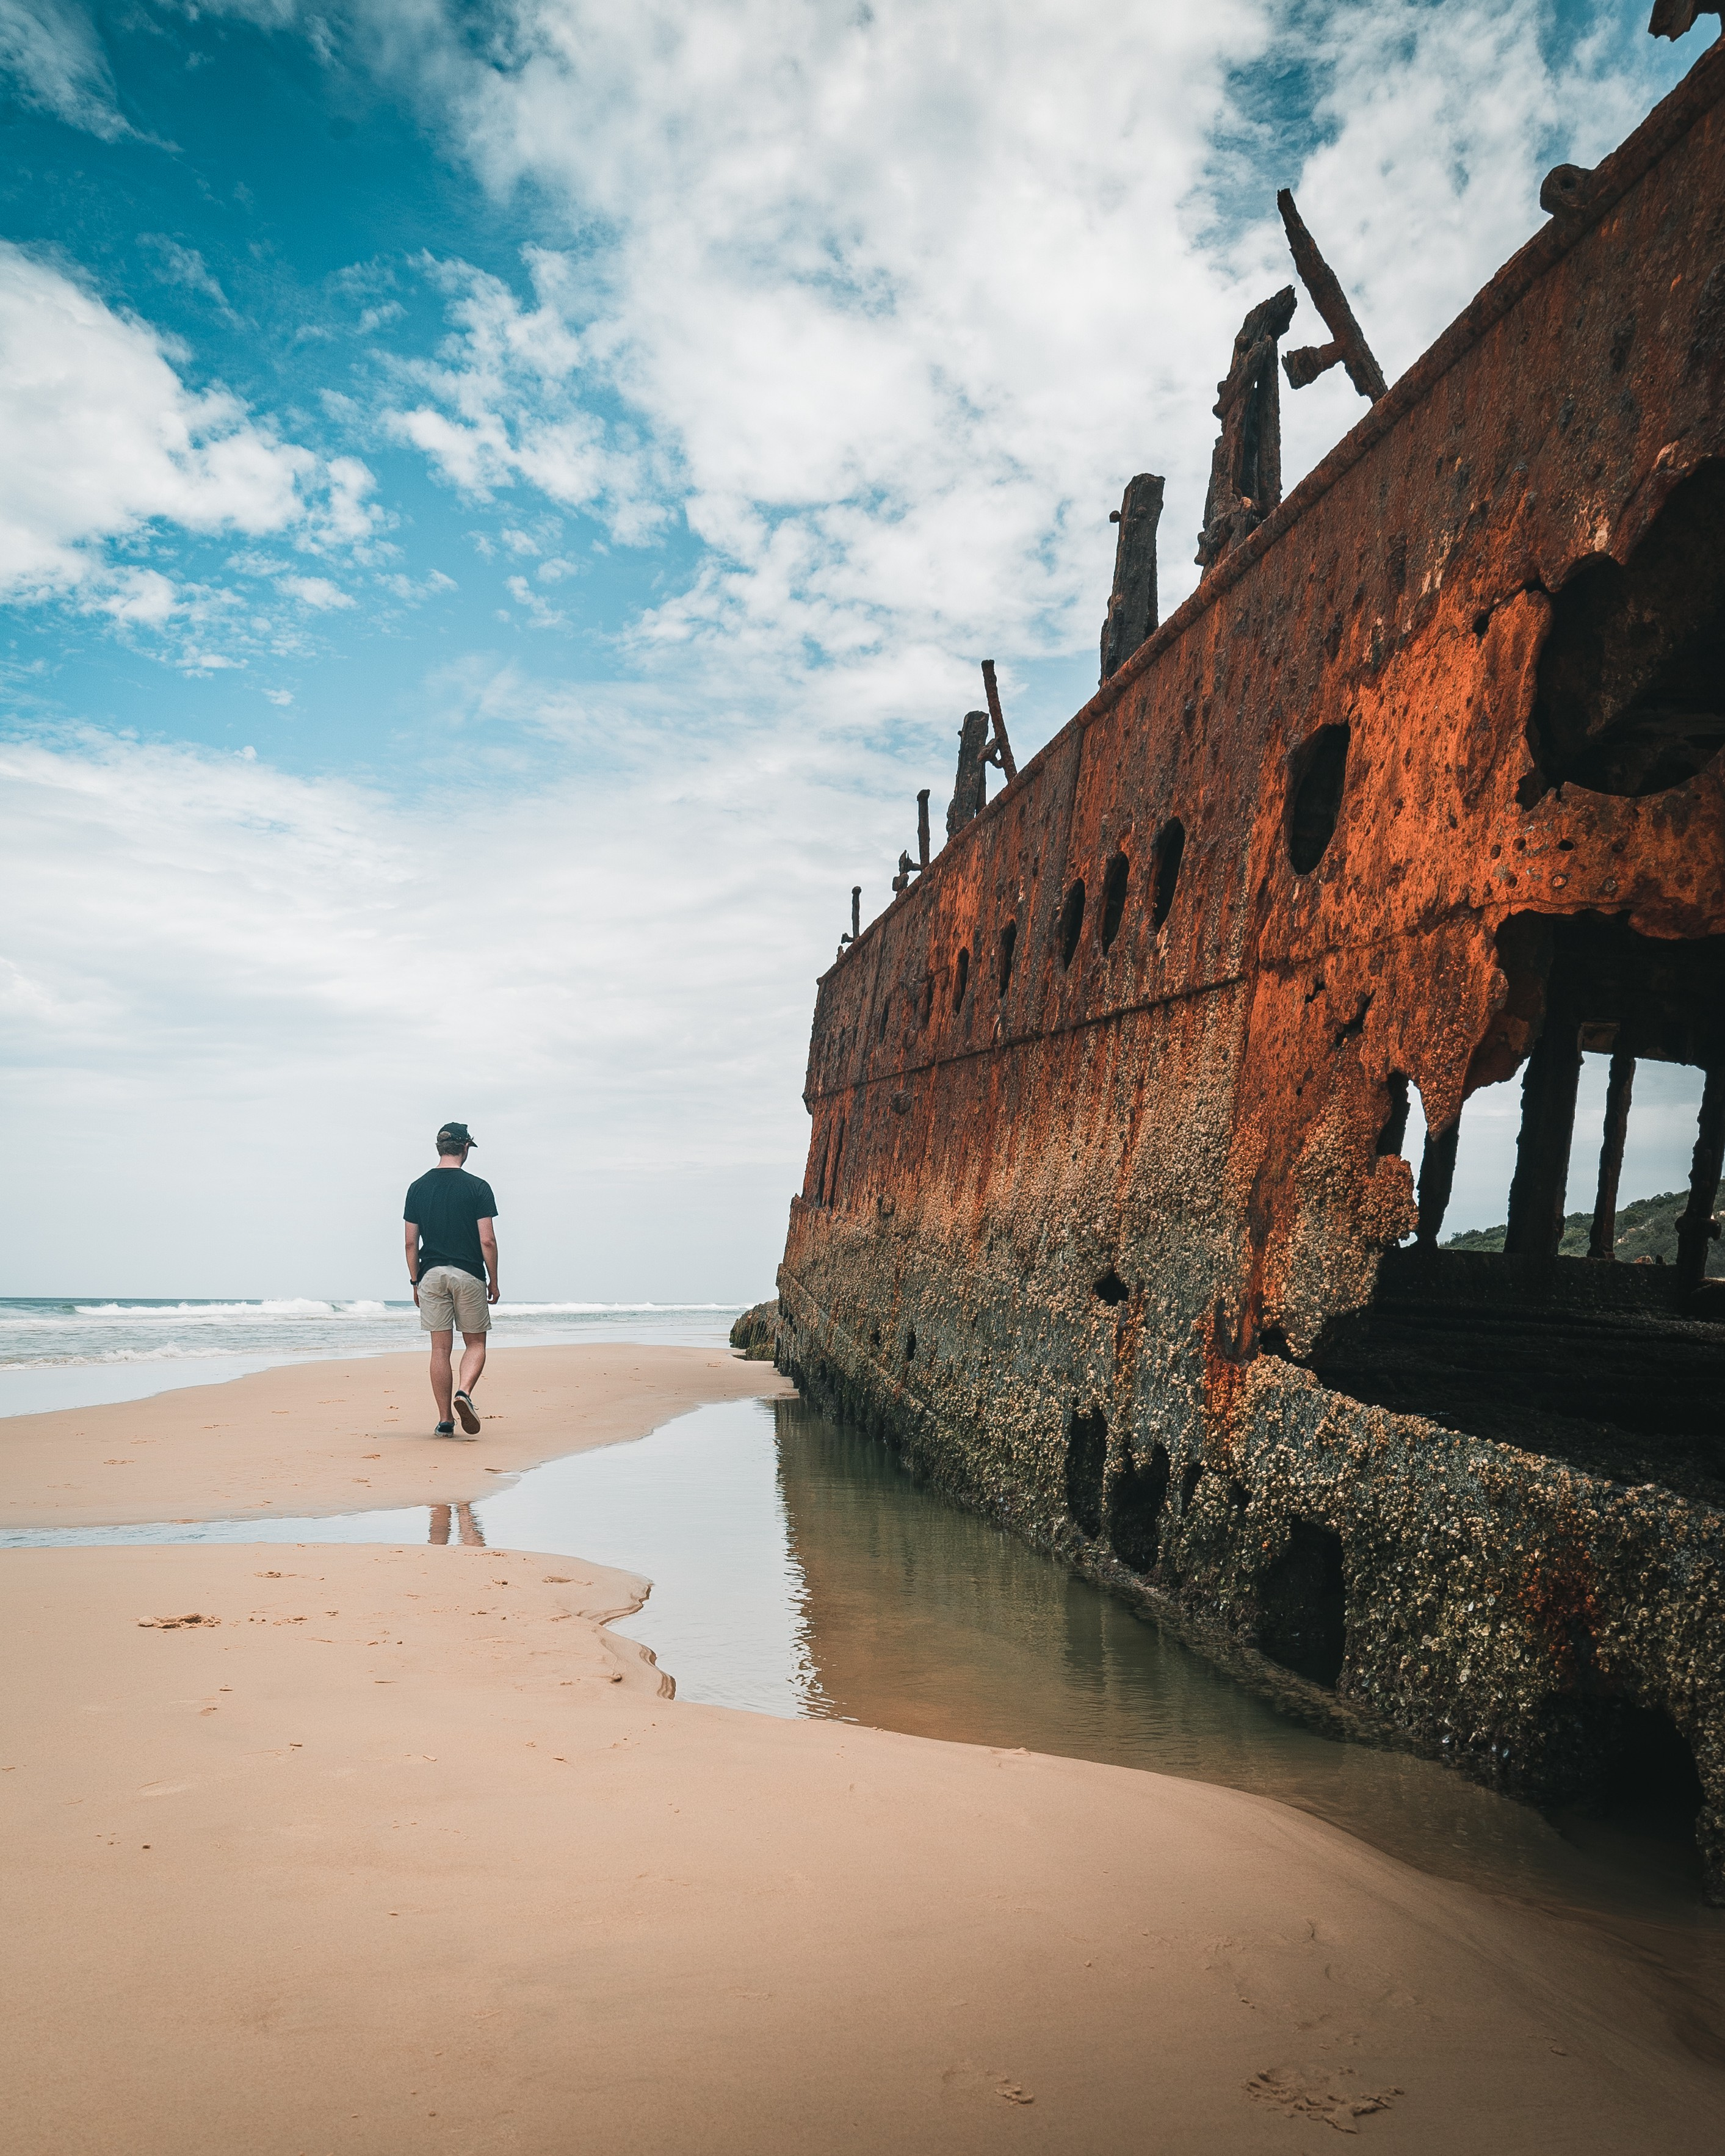 A person walking on a beach next to a rusted ship. The rust is so severe that it seems to have rusted a large hole in the ship.